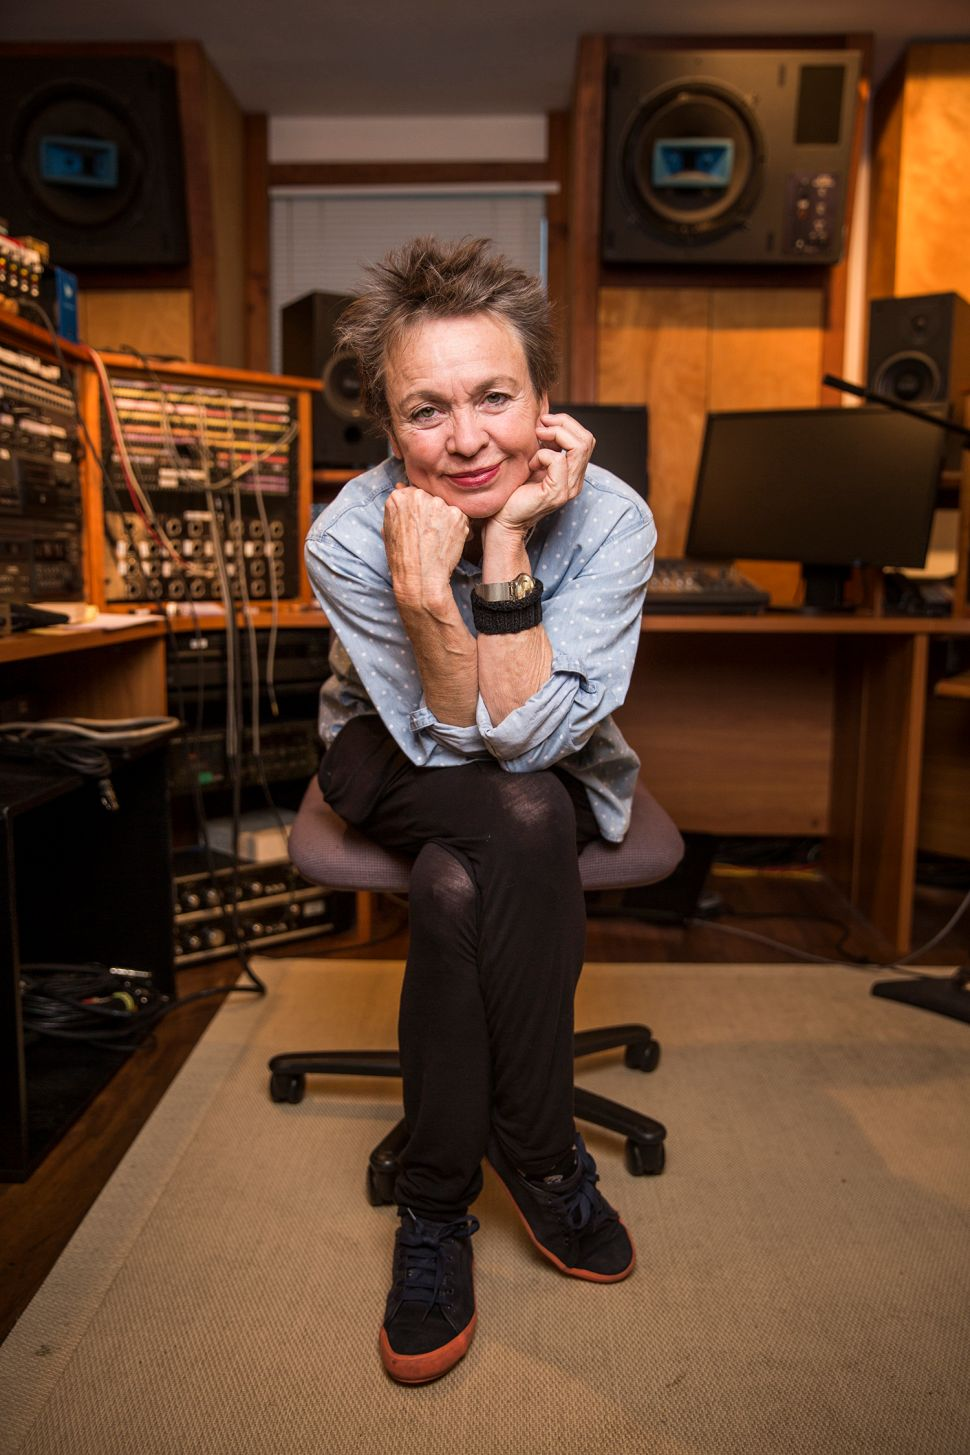 The Fantastical Story of Laurie Anderson and Lolabelle